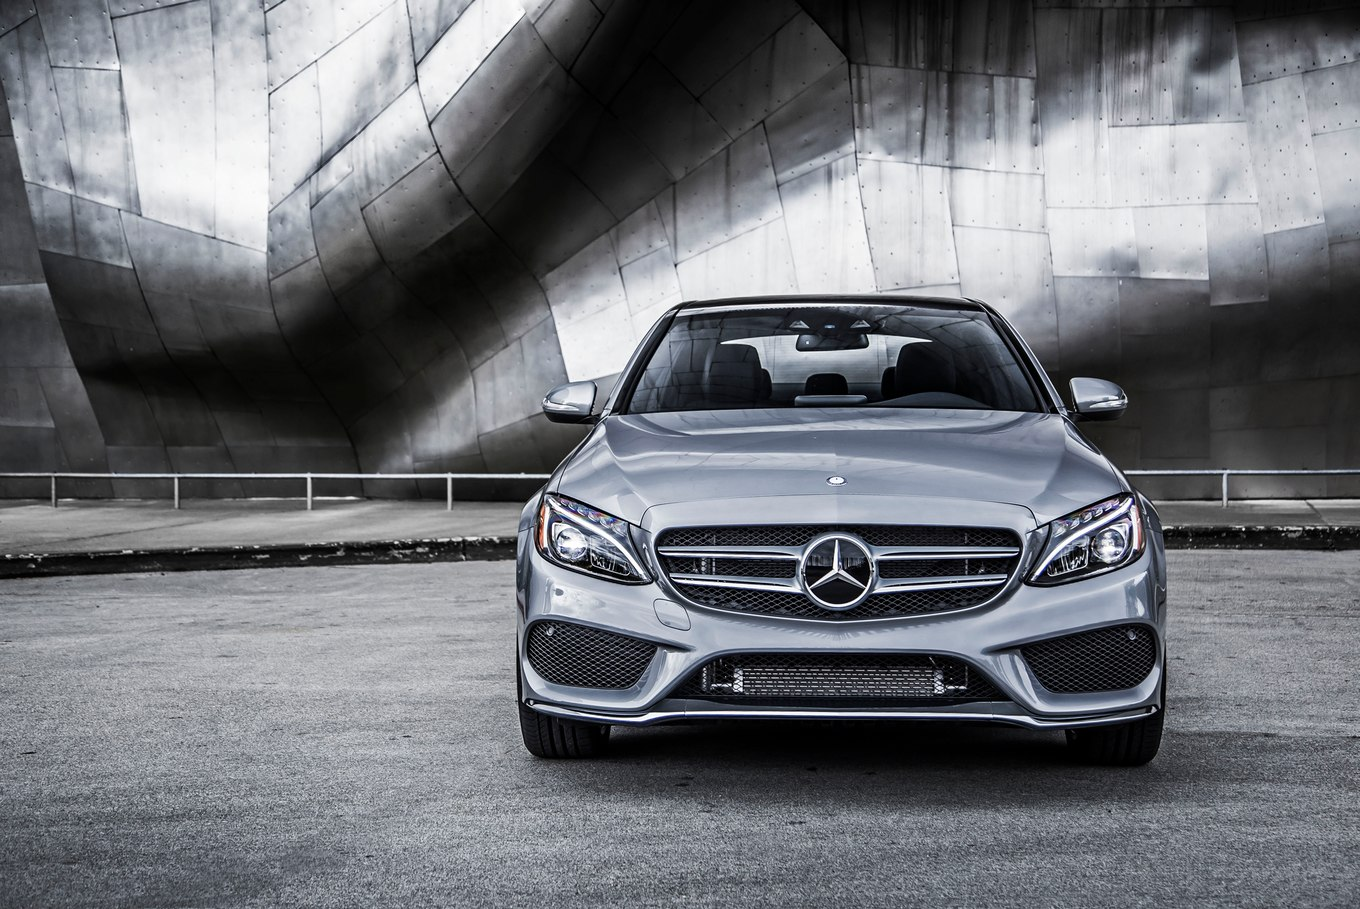 2015 Mercedes-Benz C300 4Matic First Test - Motor Trend